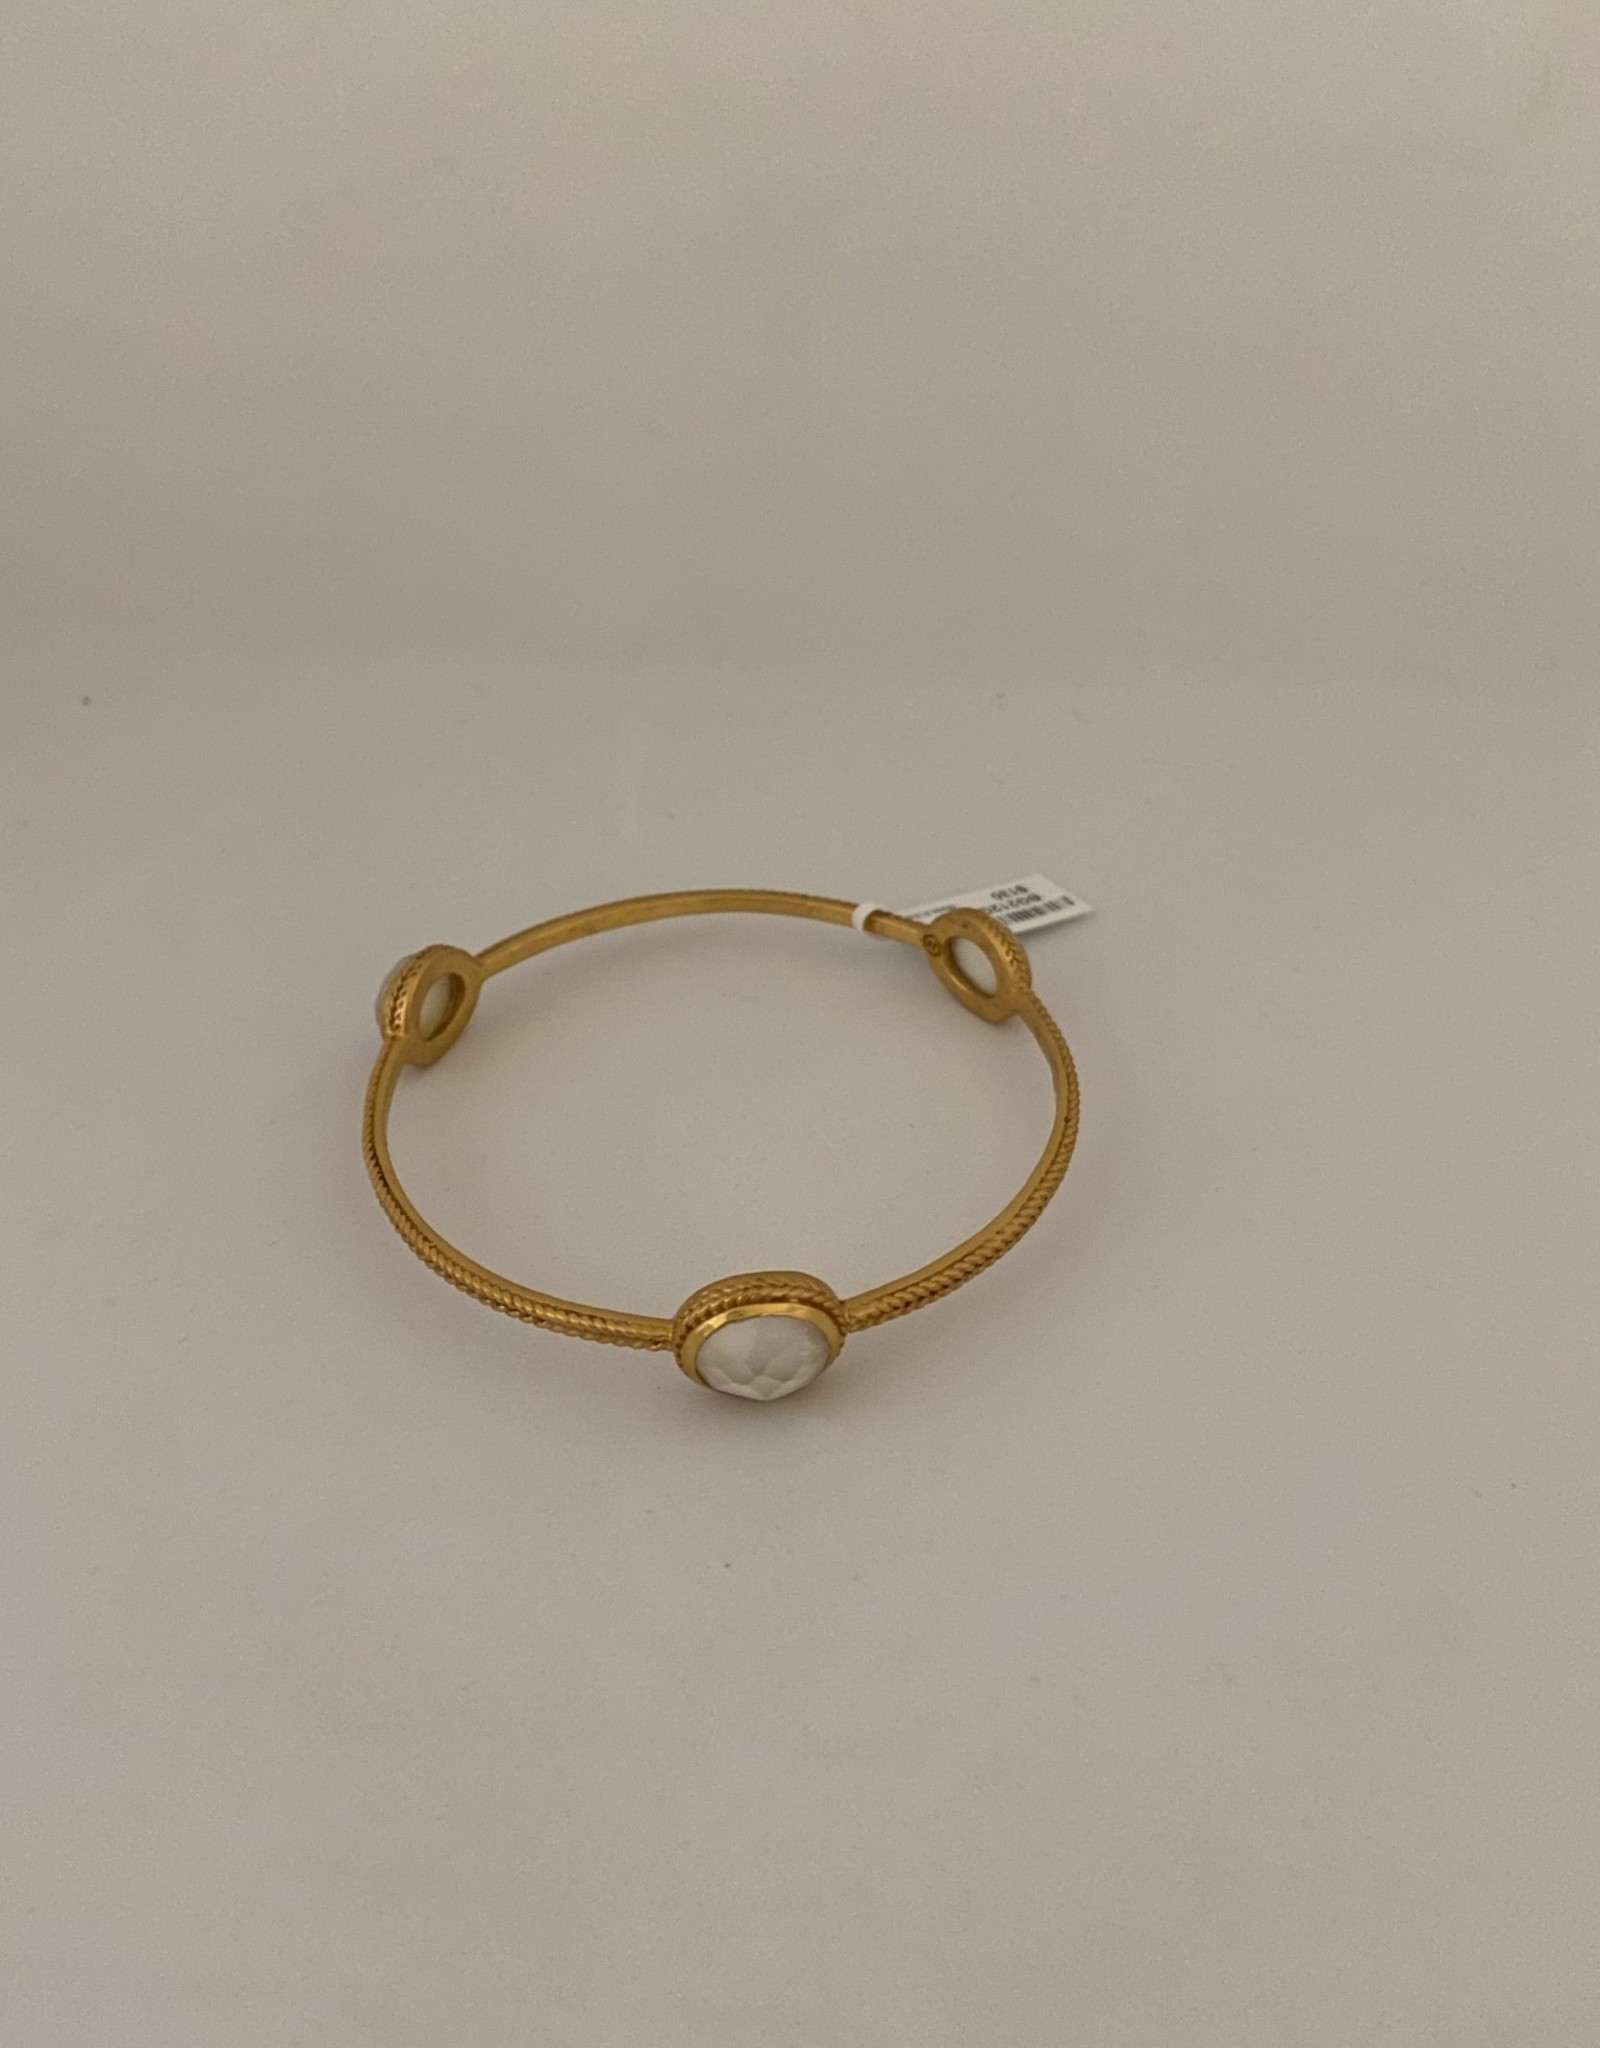 Julie Vos Calypso Bangle Gold Iridescent Clear Crystal - Medium